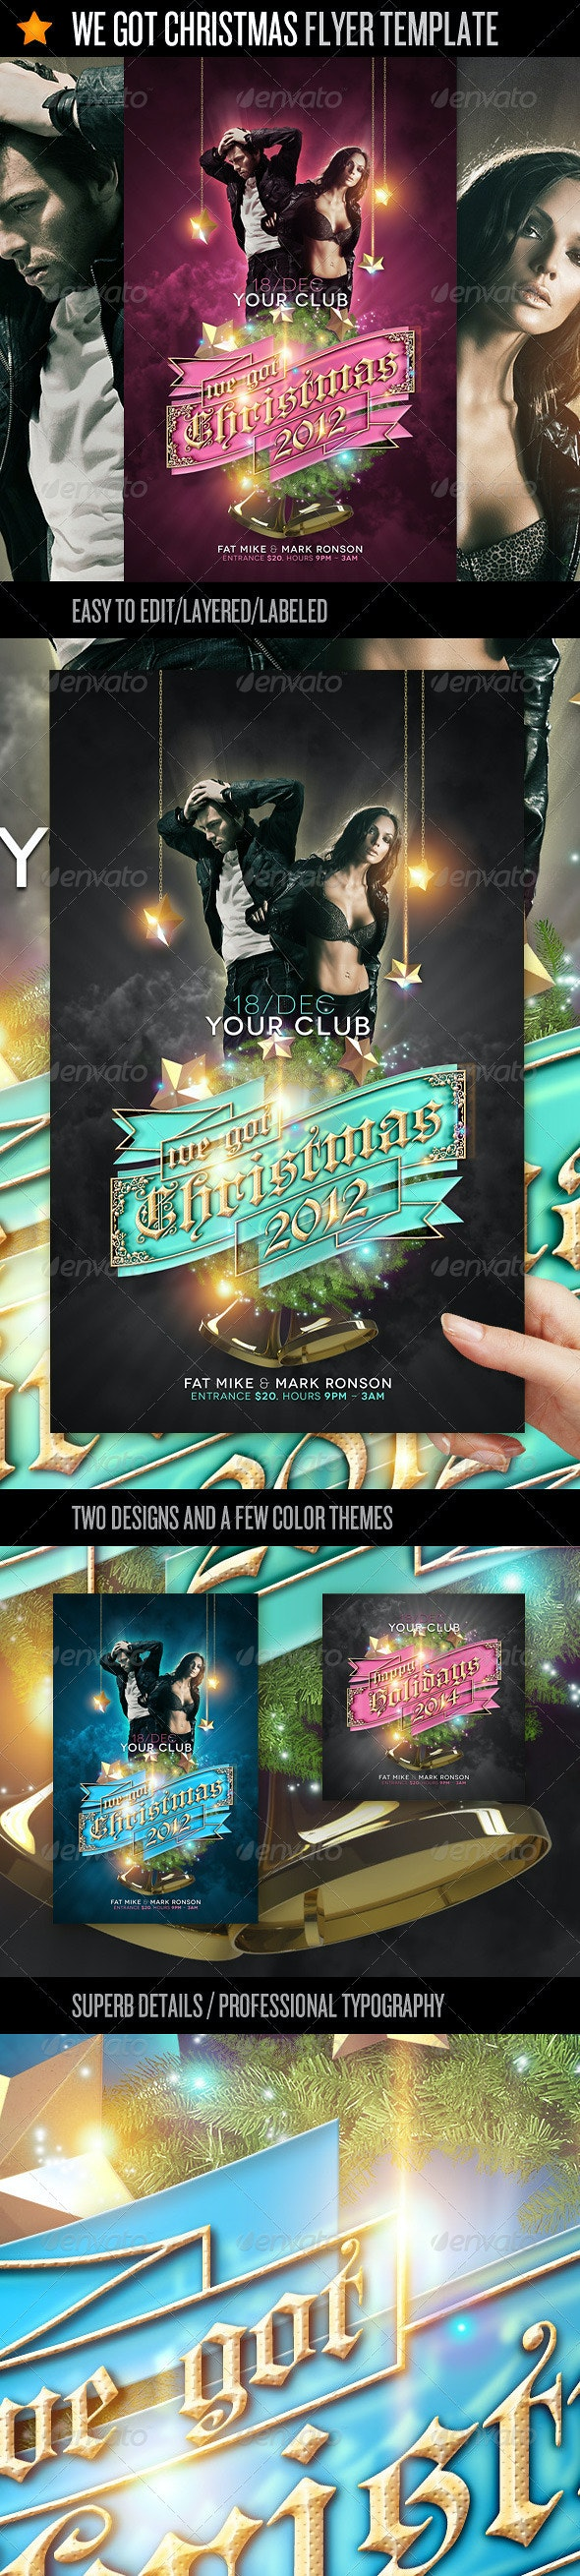 We Got Christmas - Flyer Template - Events Flyers